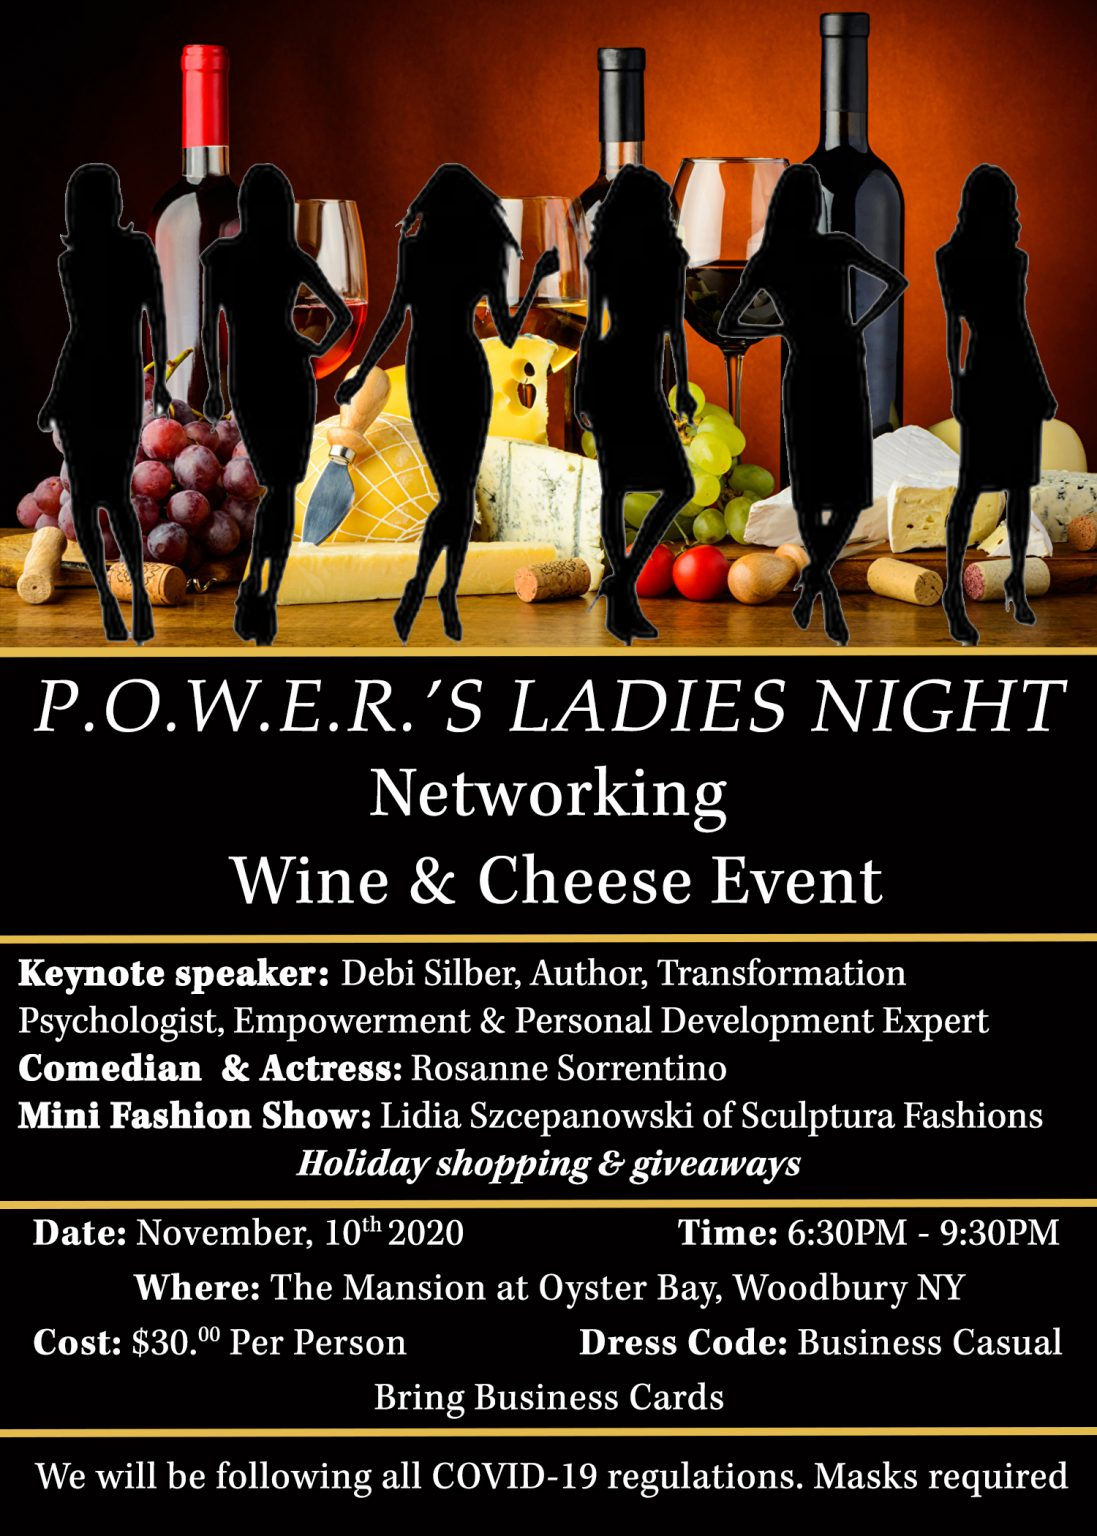 P.O.W.E.R. Announces Their Ladies Night Wine and Cheese Networking Event Hosted by Founder, Tonia DeCosimo